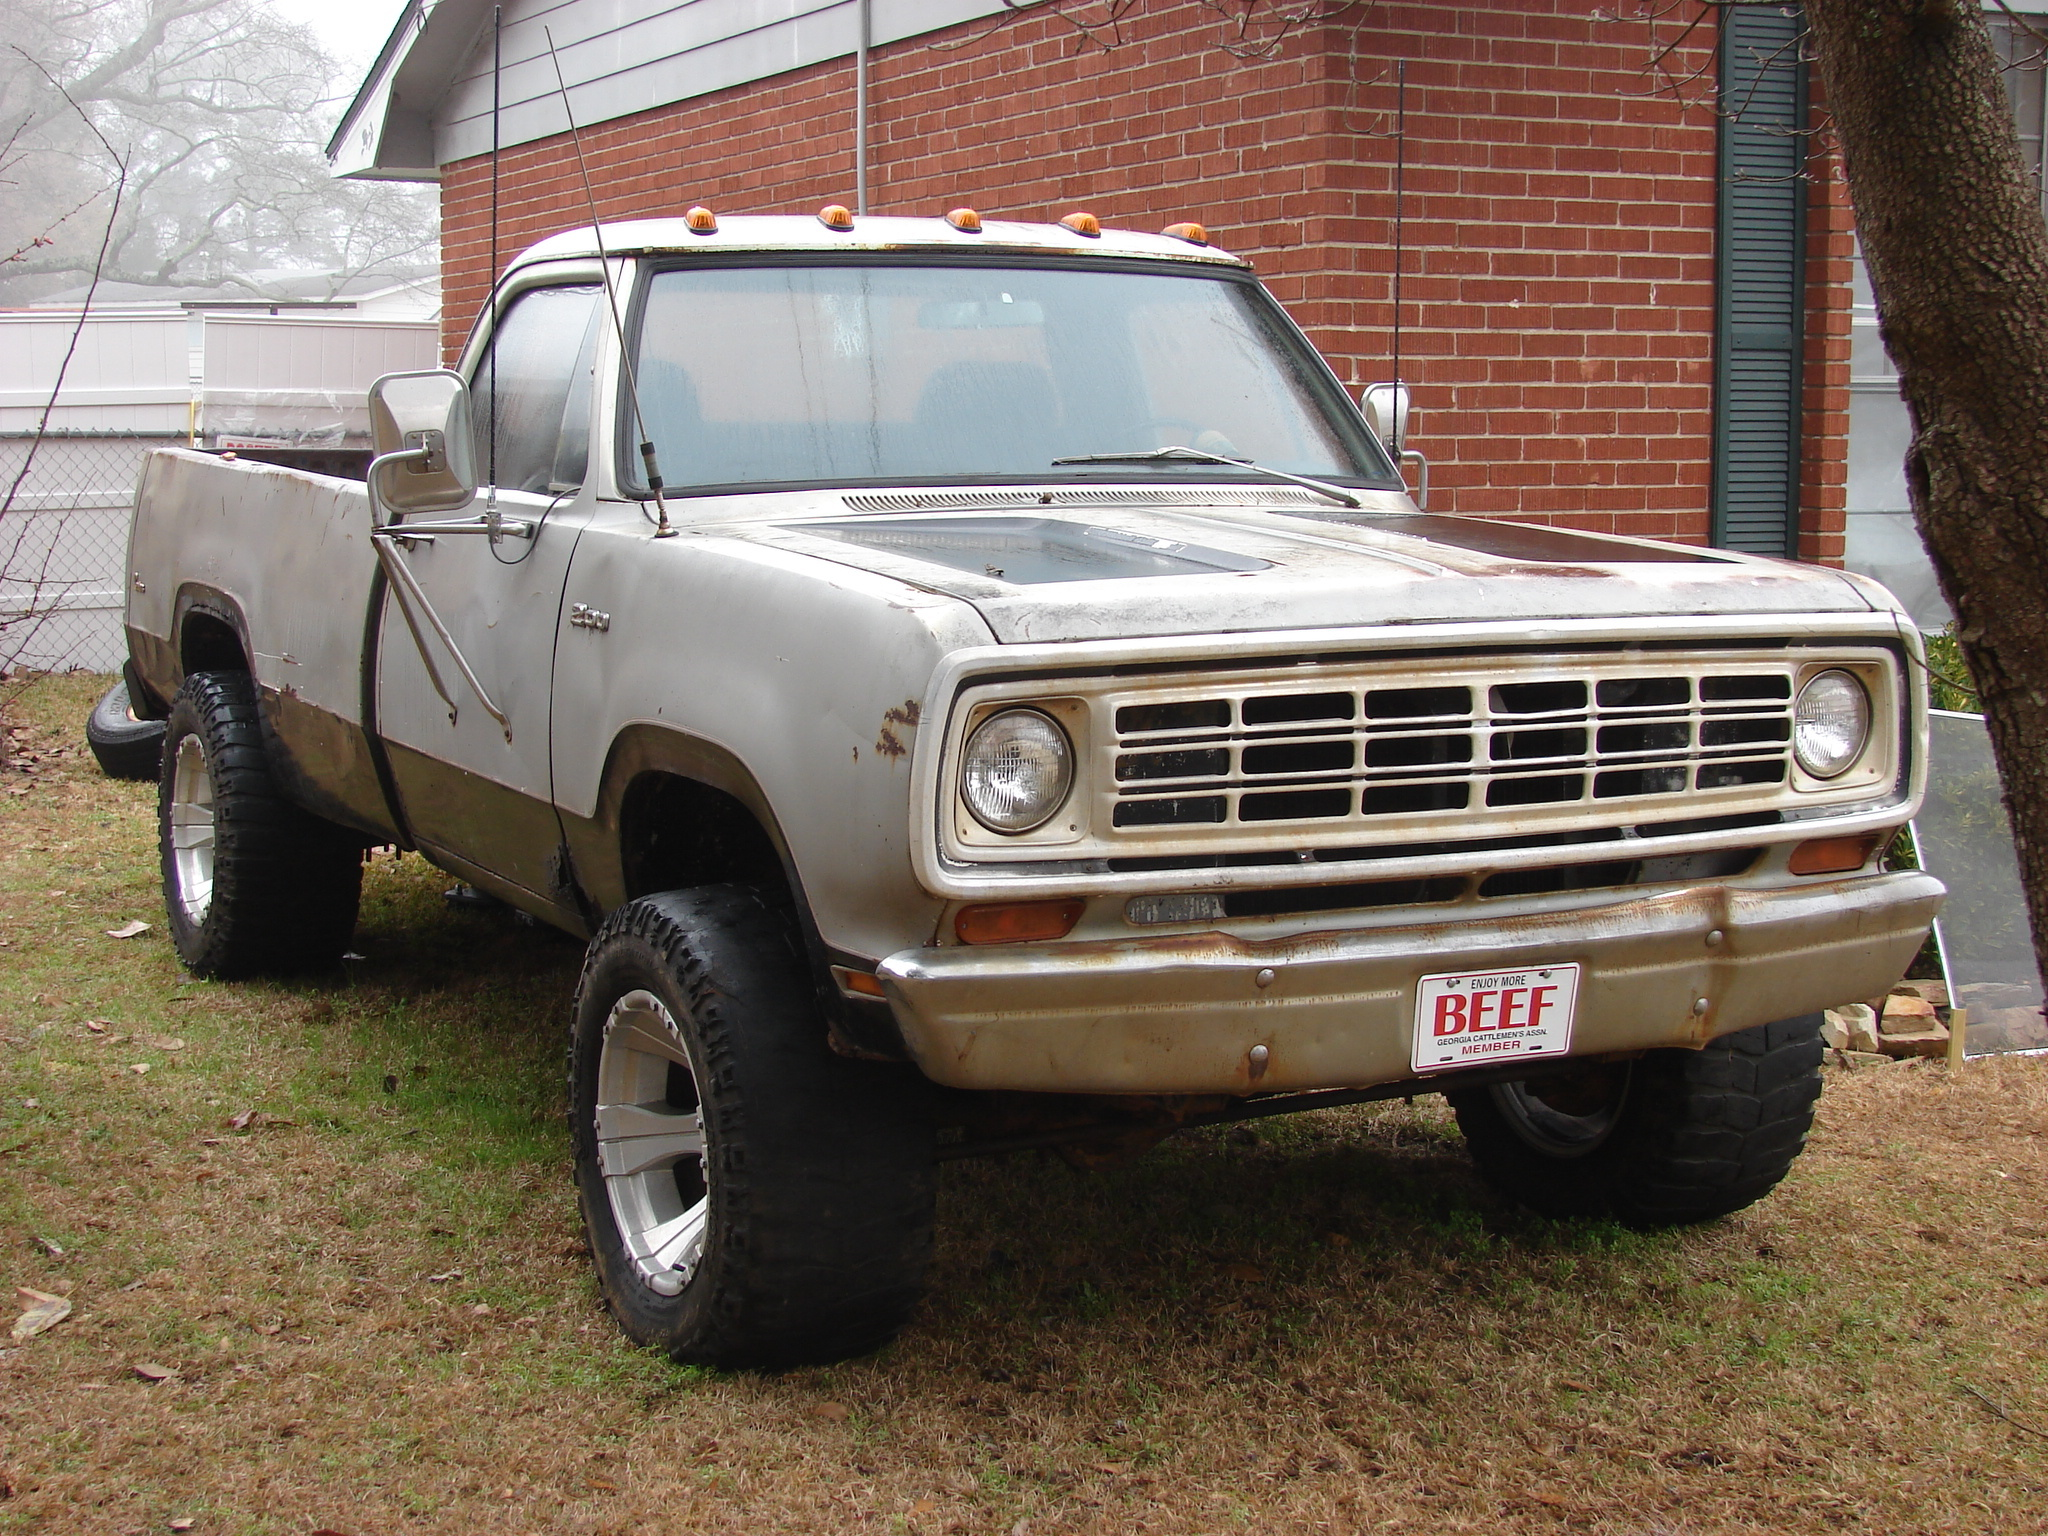 Demon_Offroad 1974 Dodge Power Wagon 12551173